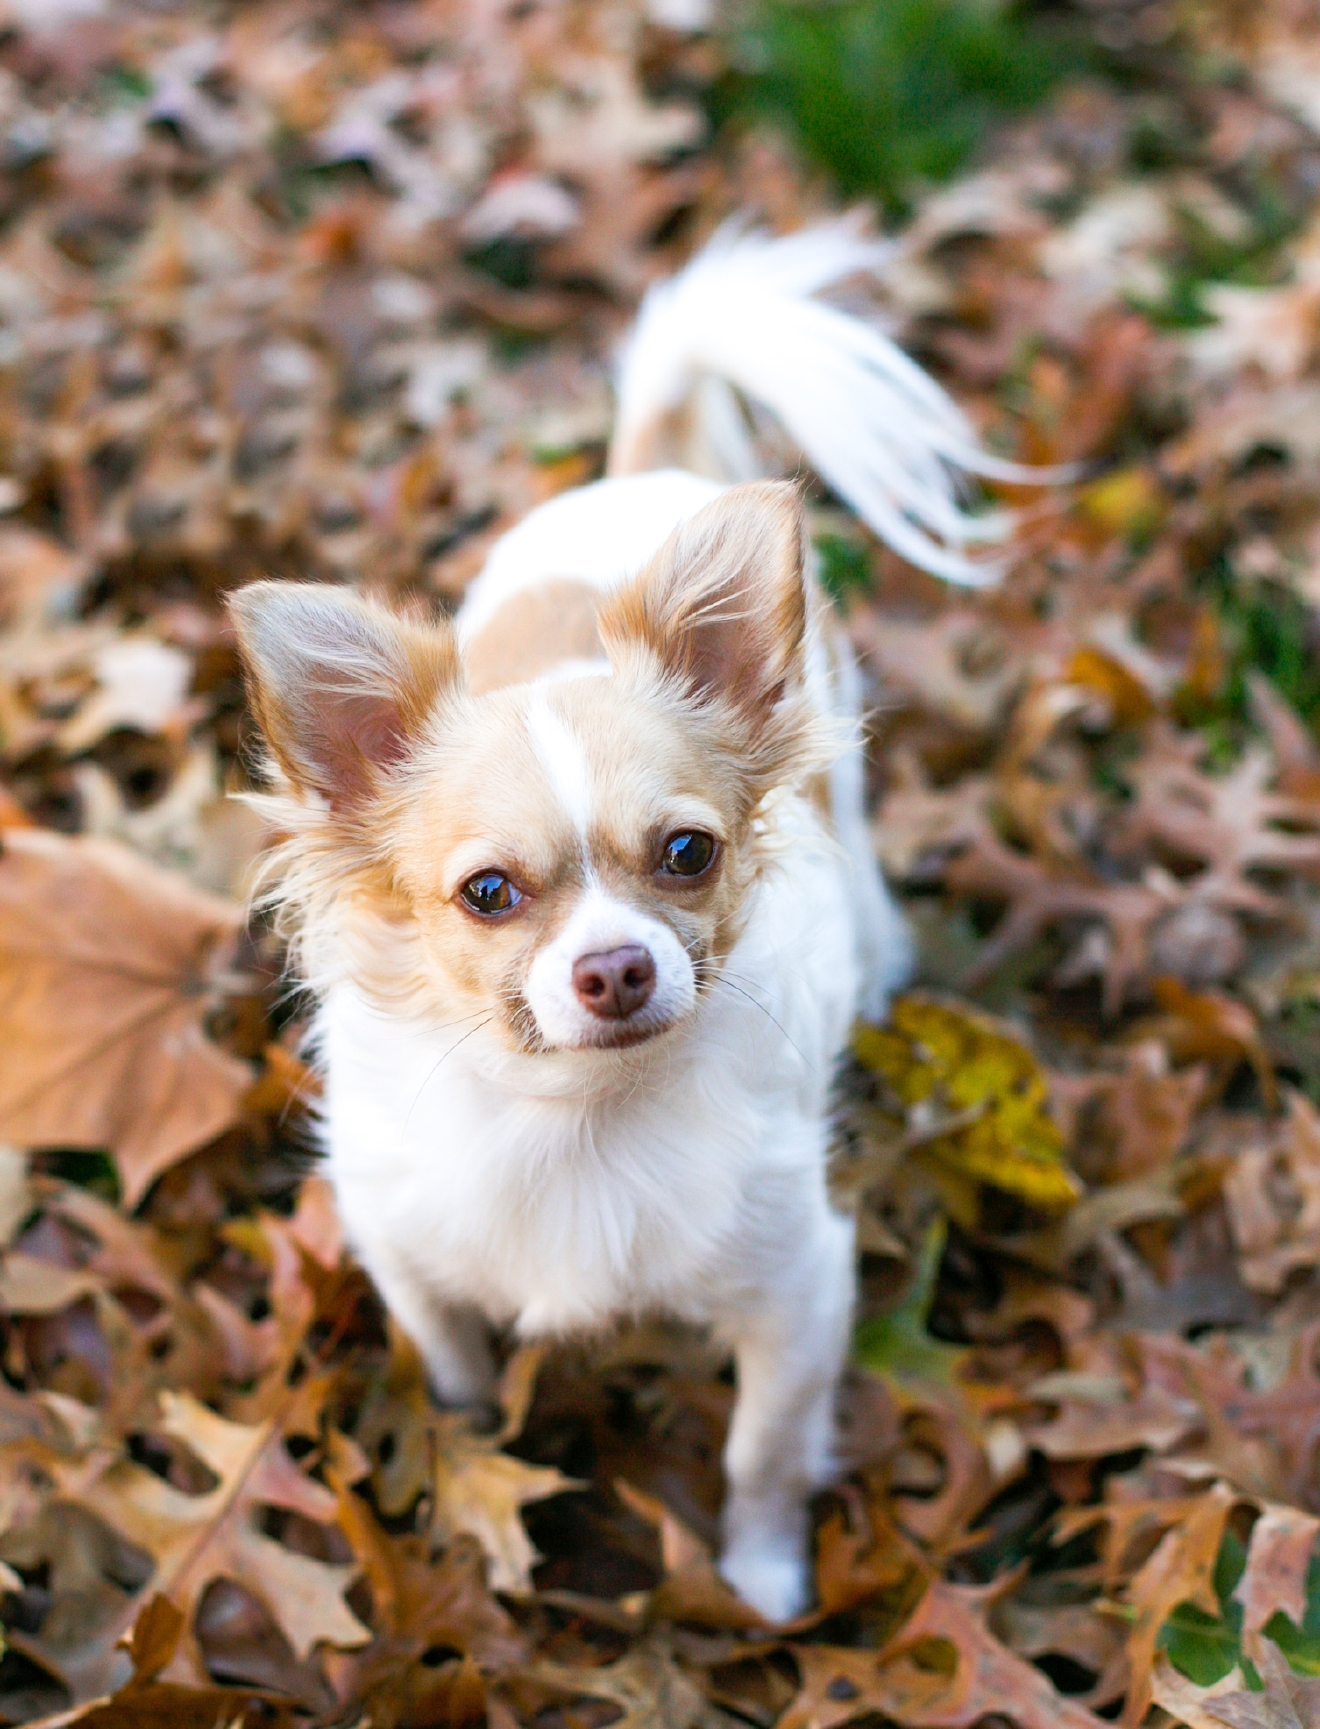 What's one of your hobbies outside of photography? Running! (Photo: Fuzzypants Pet Photography)